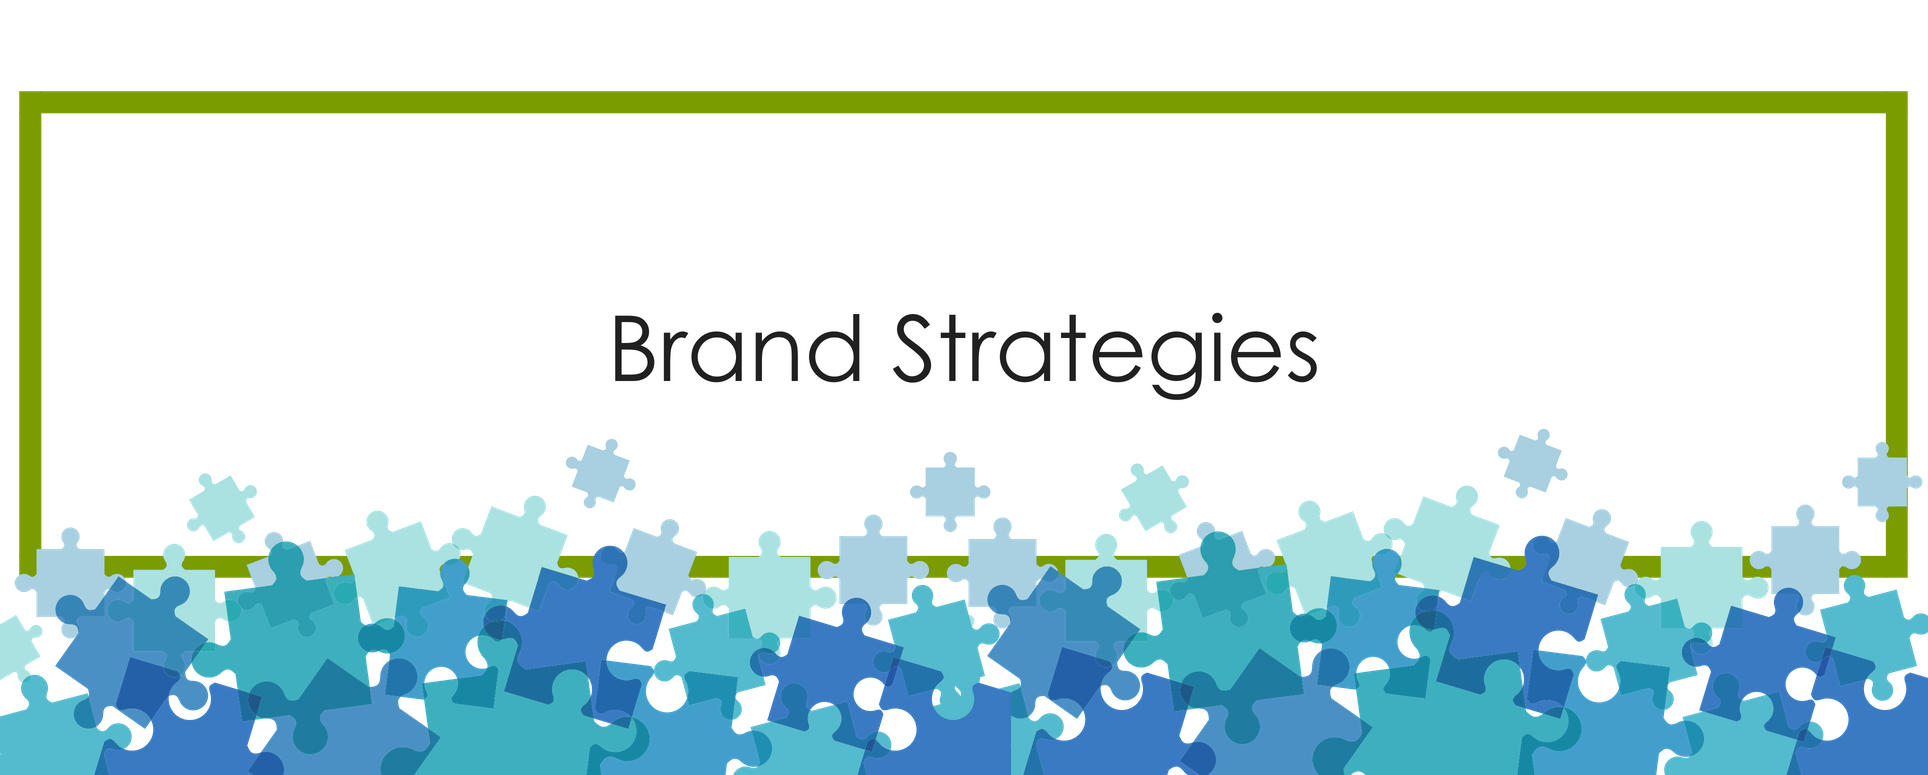 We are all About the Brand Strategies Puzzle